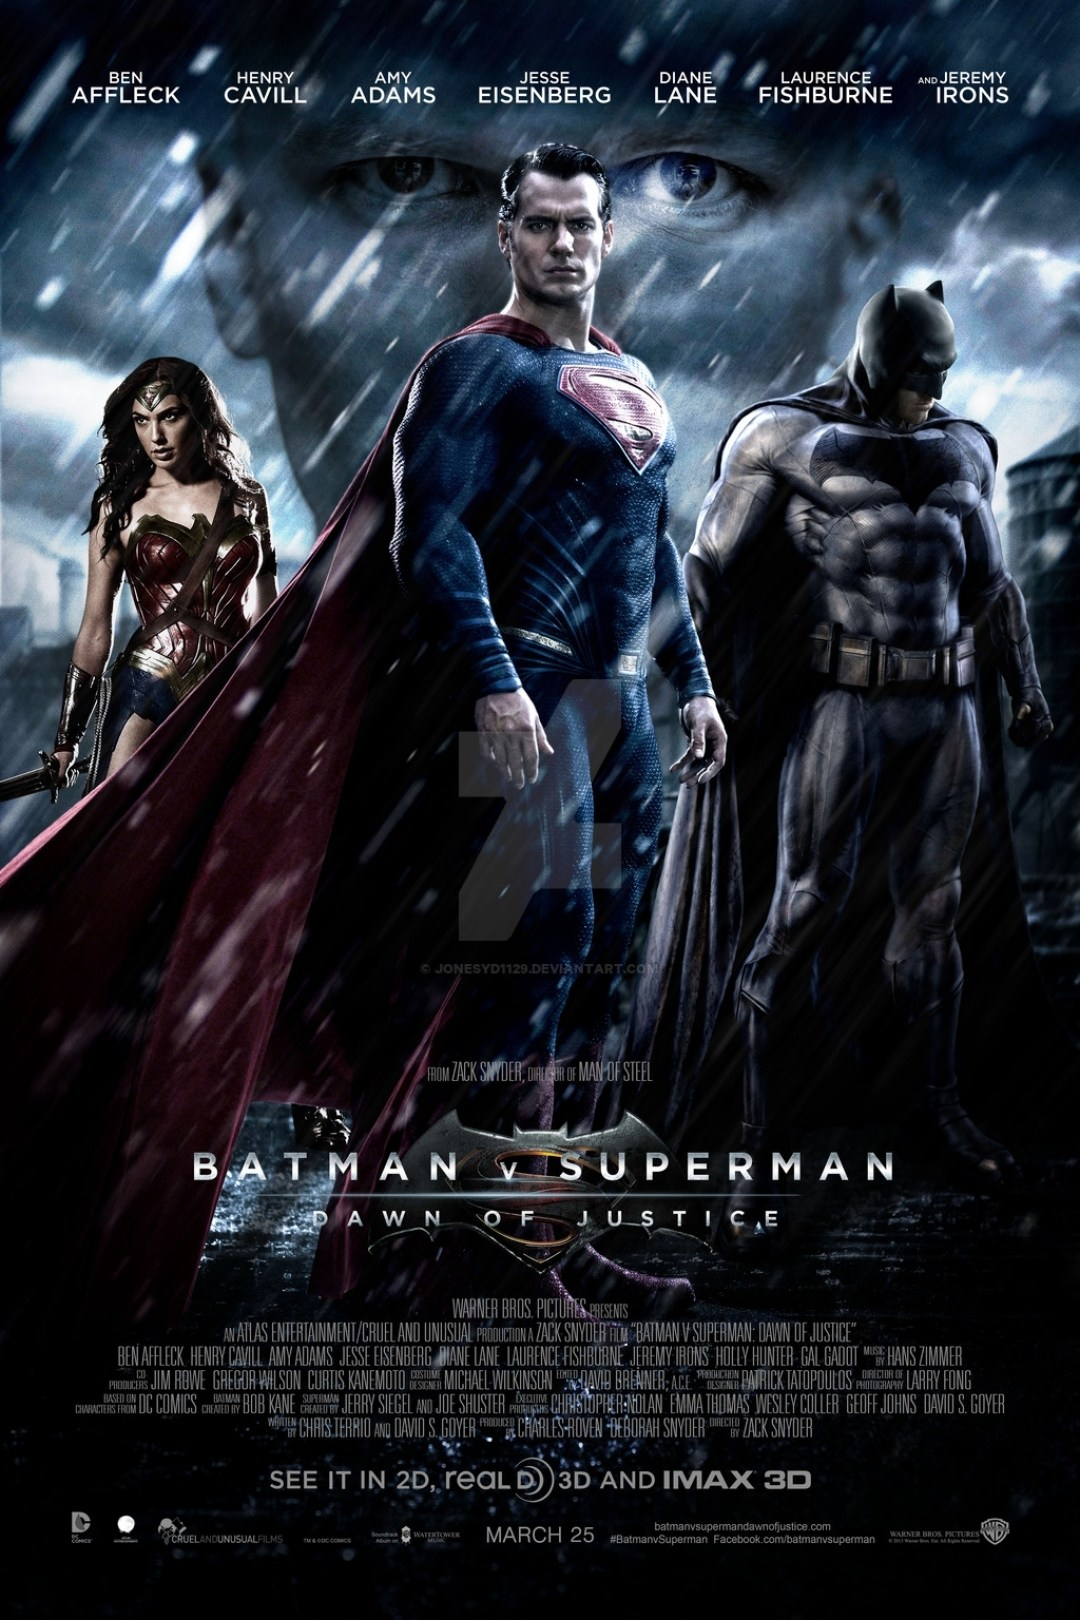 Batman-Vs-Superman-Posters-wallpaper-hd-printable-wonder-woman-all-characters